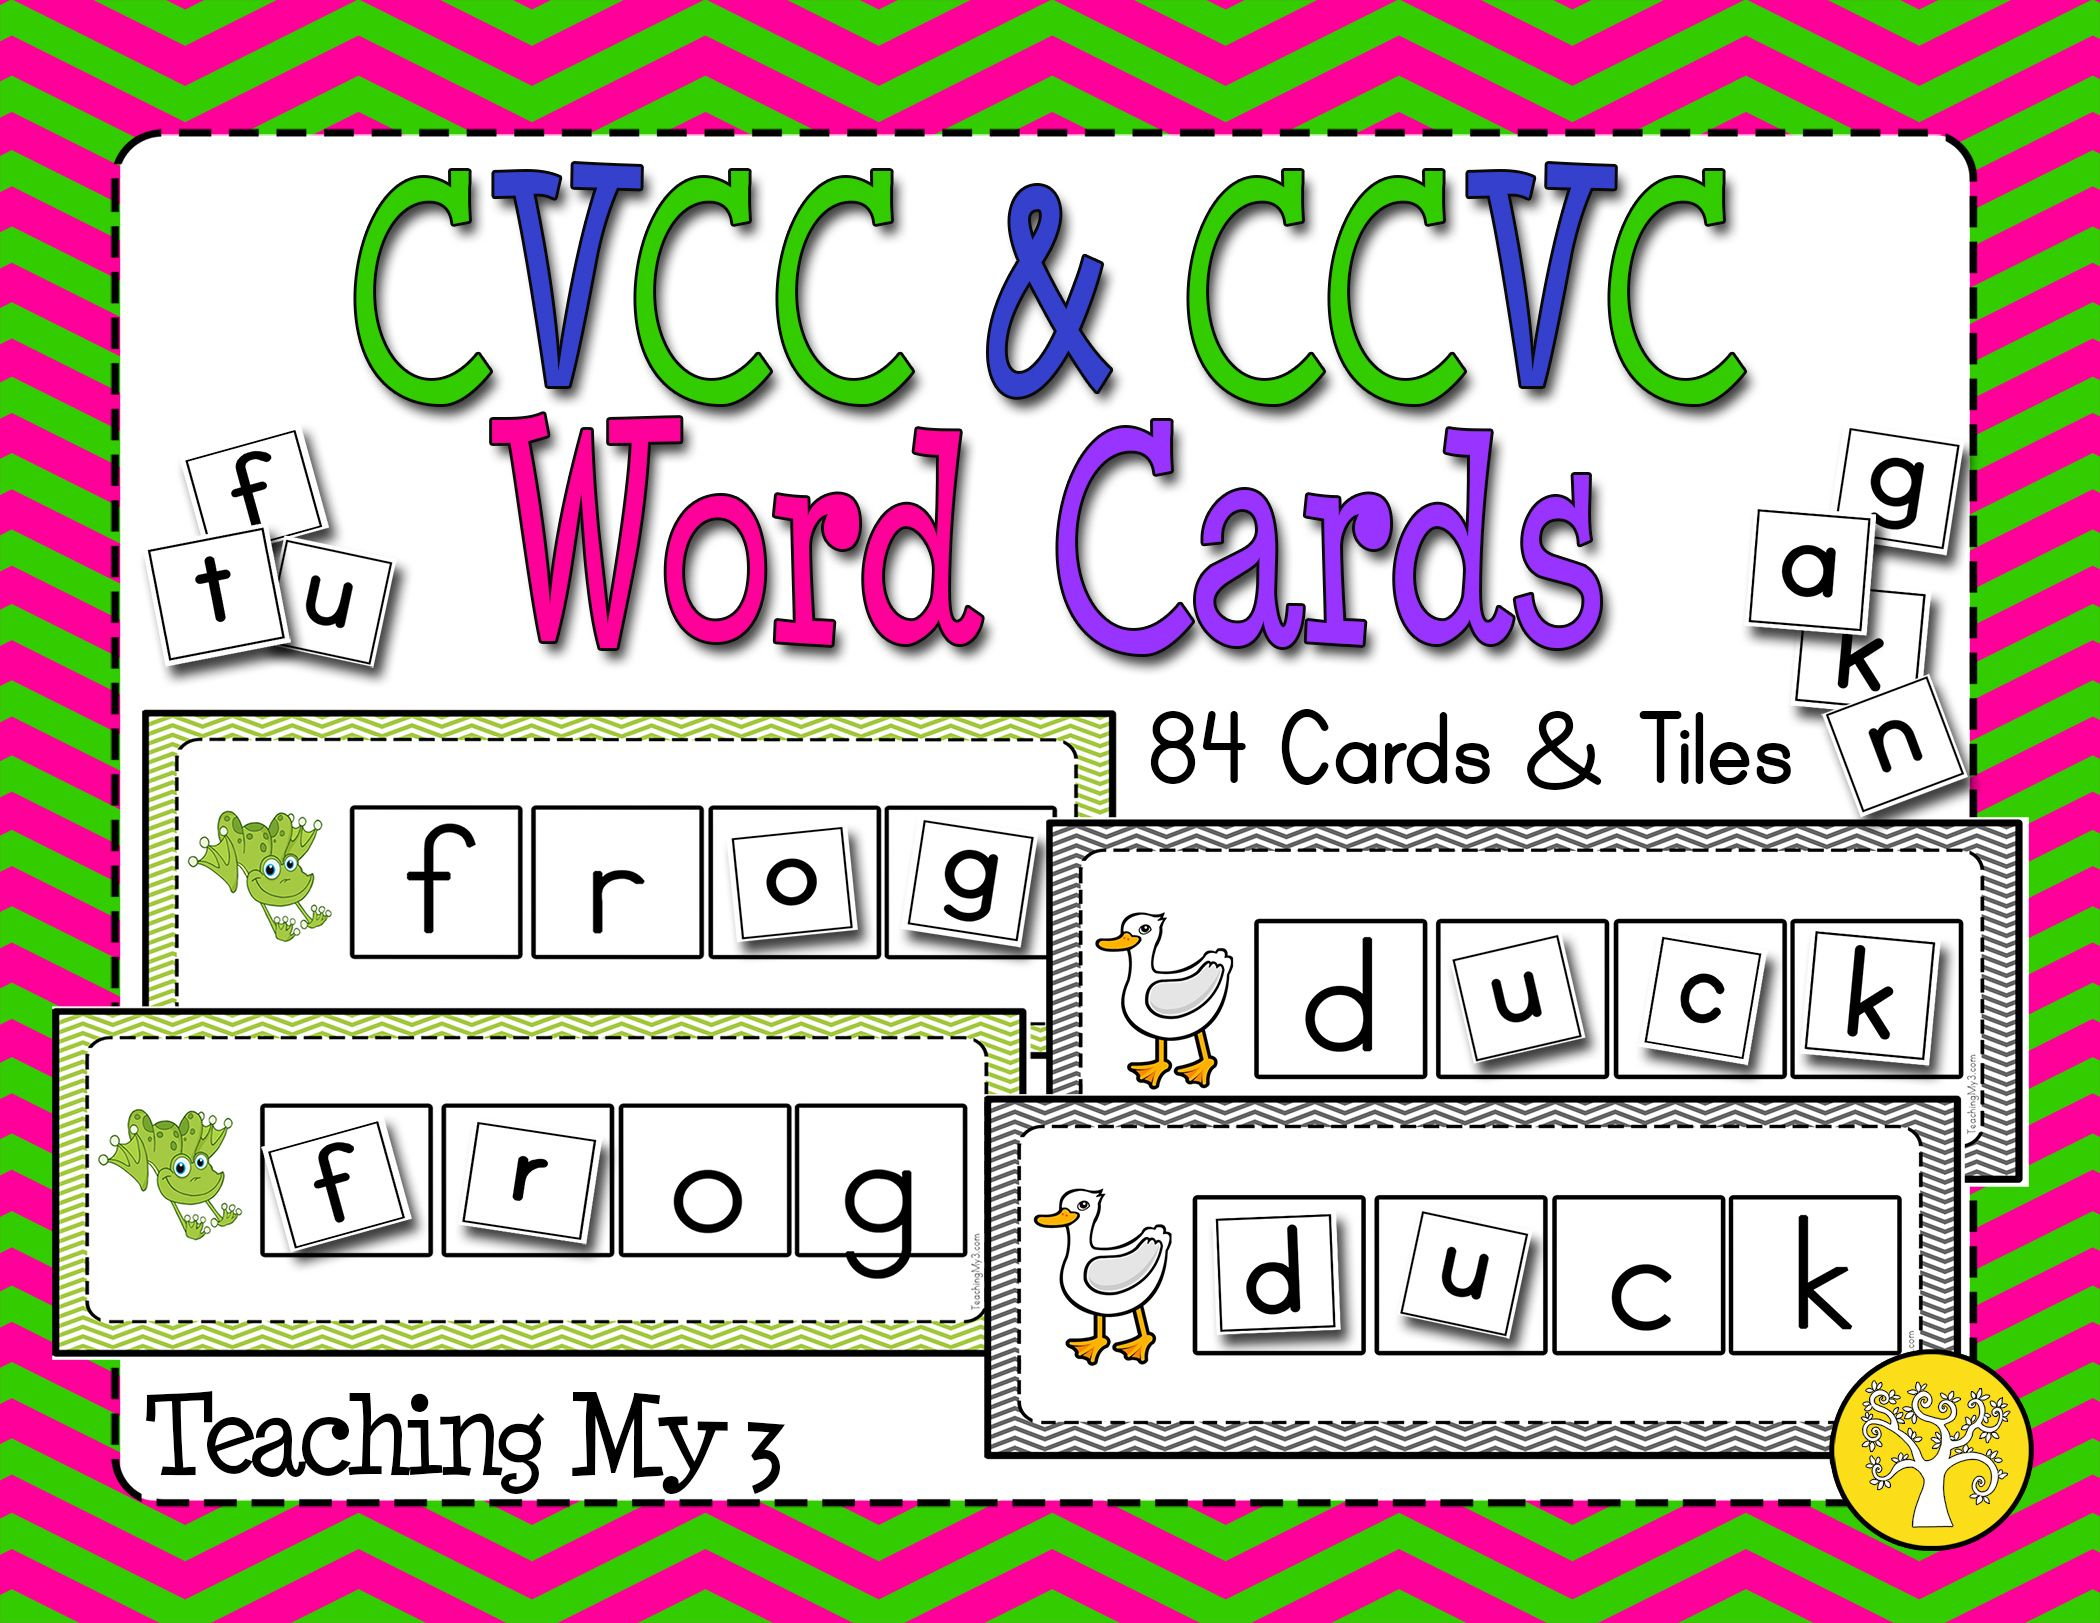 Cvcc And Ccvc Word Cards With Pictures And Letter Tiles